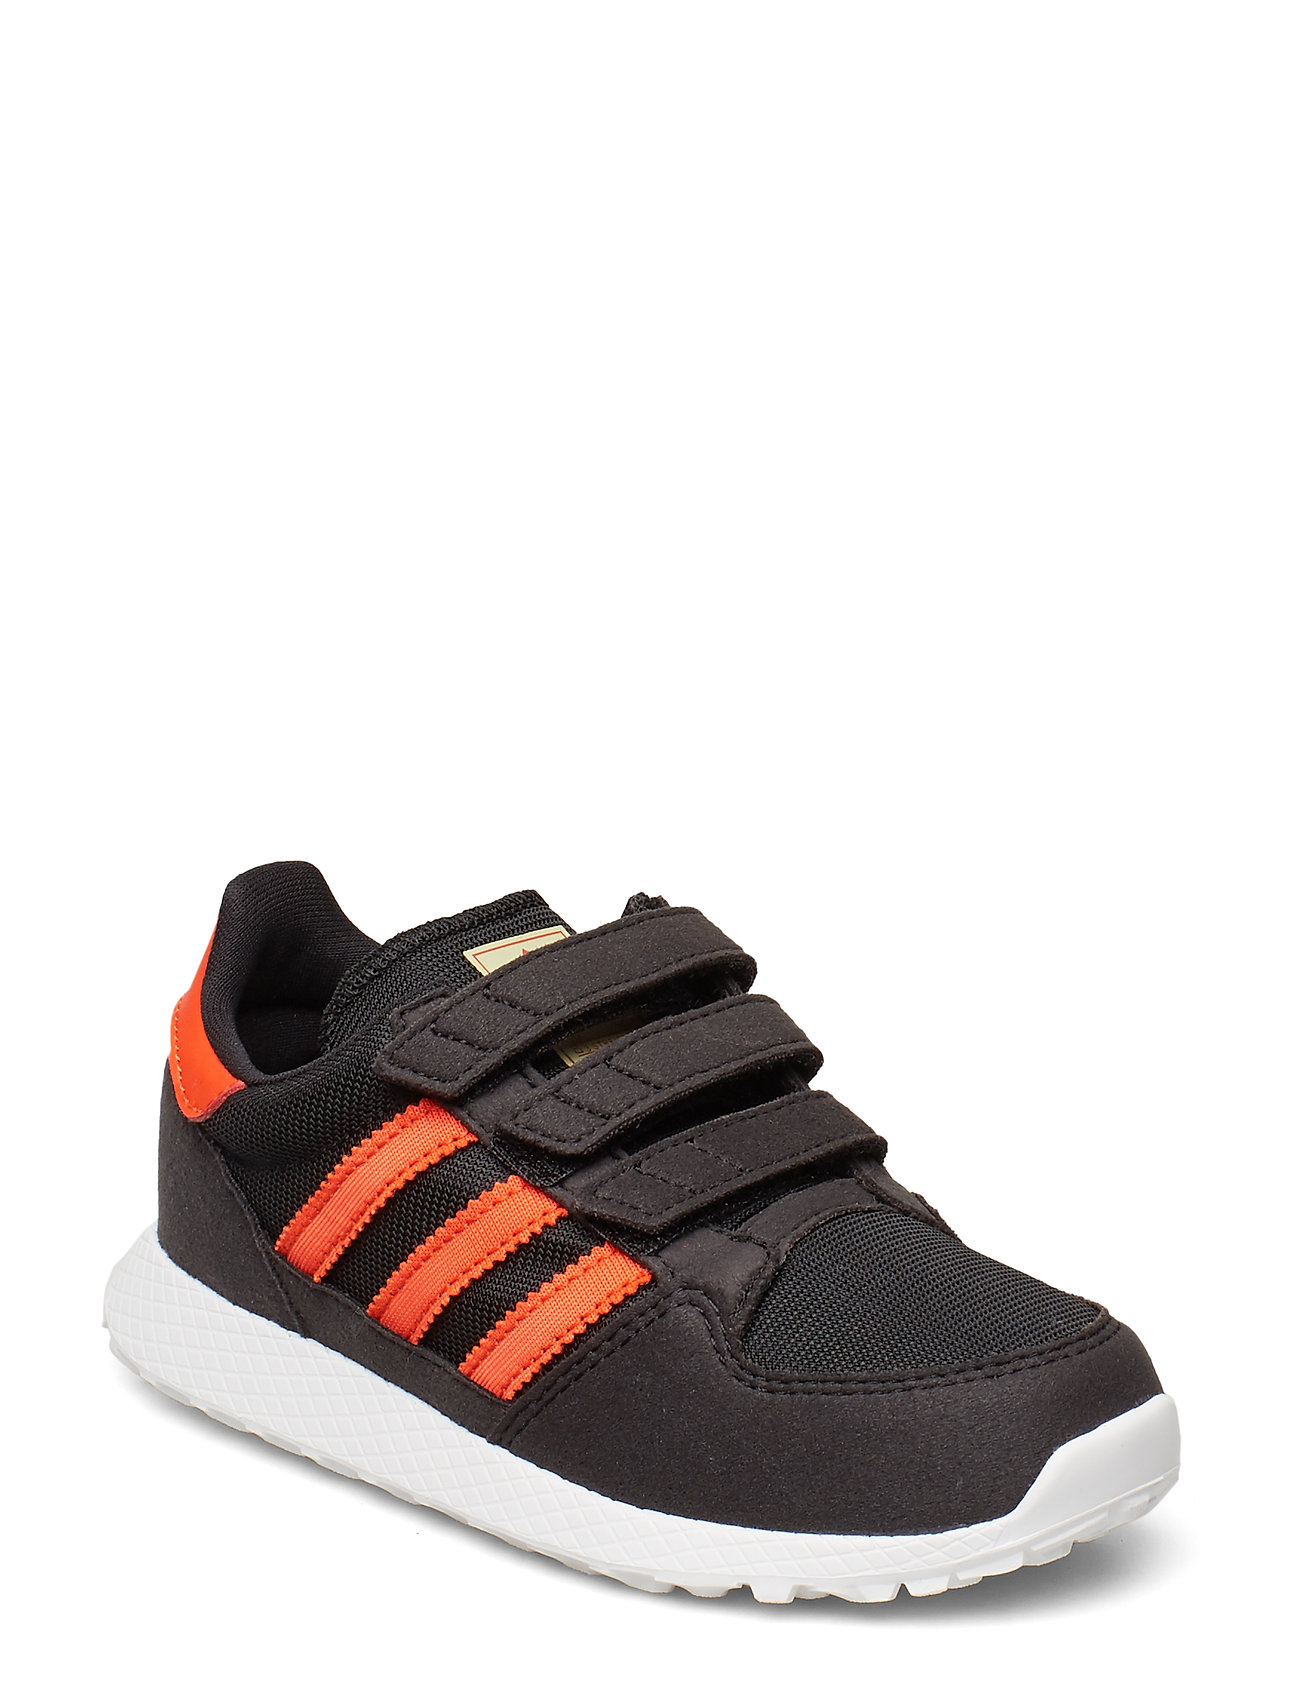 Forest Grove Cf C Sneakers Sko Sort Adidas Originals